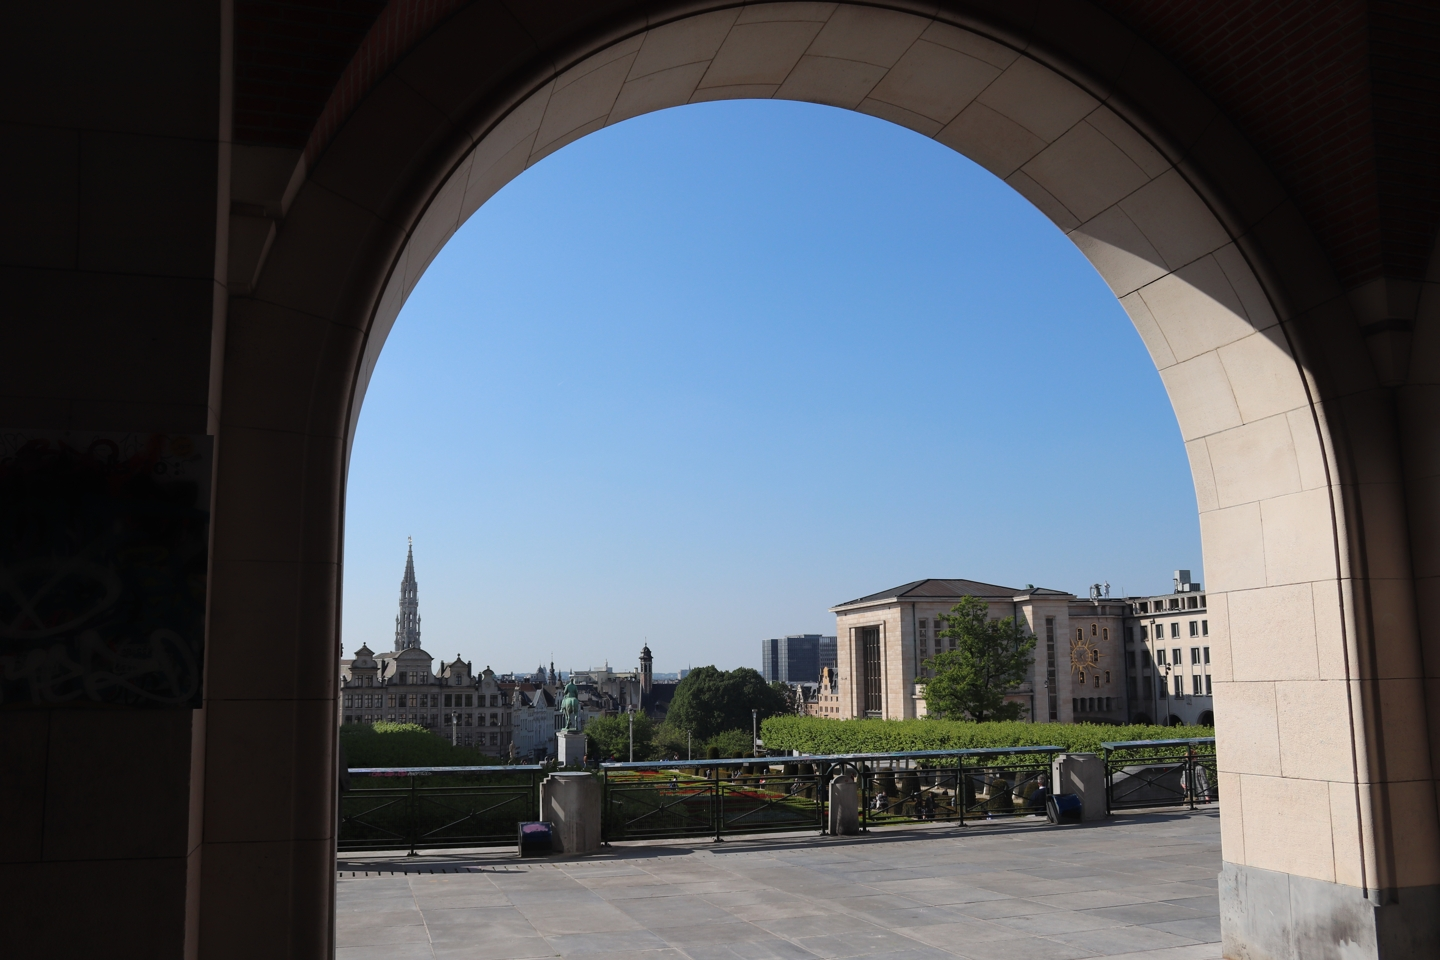 Part of Brussel. Photographed through a archway.